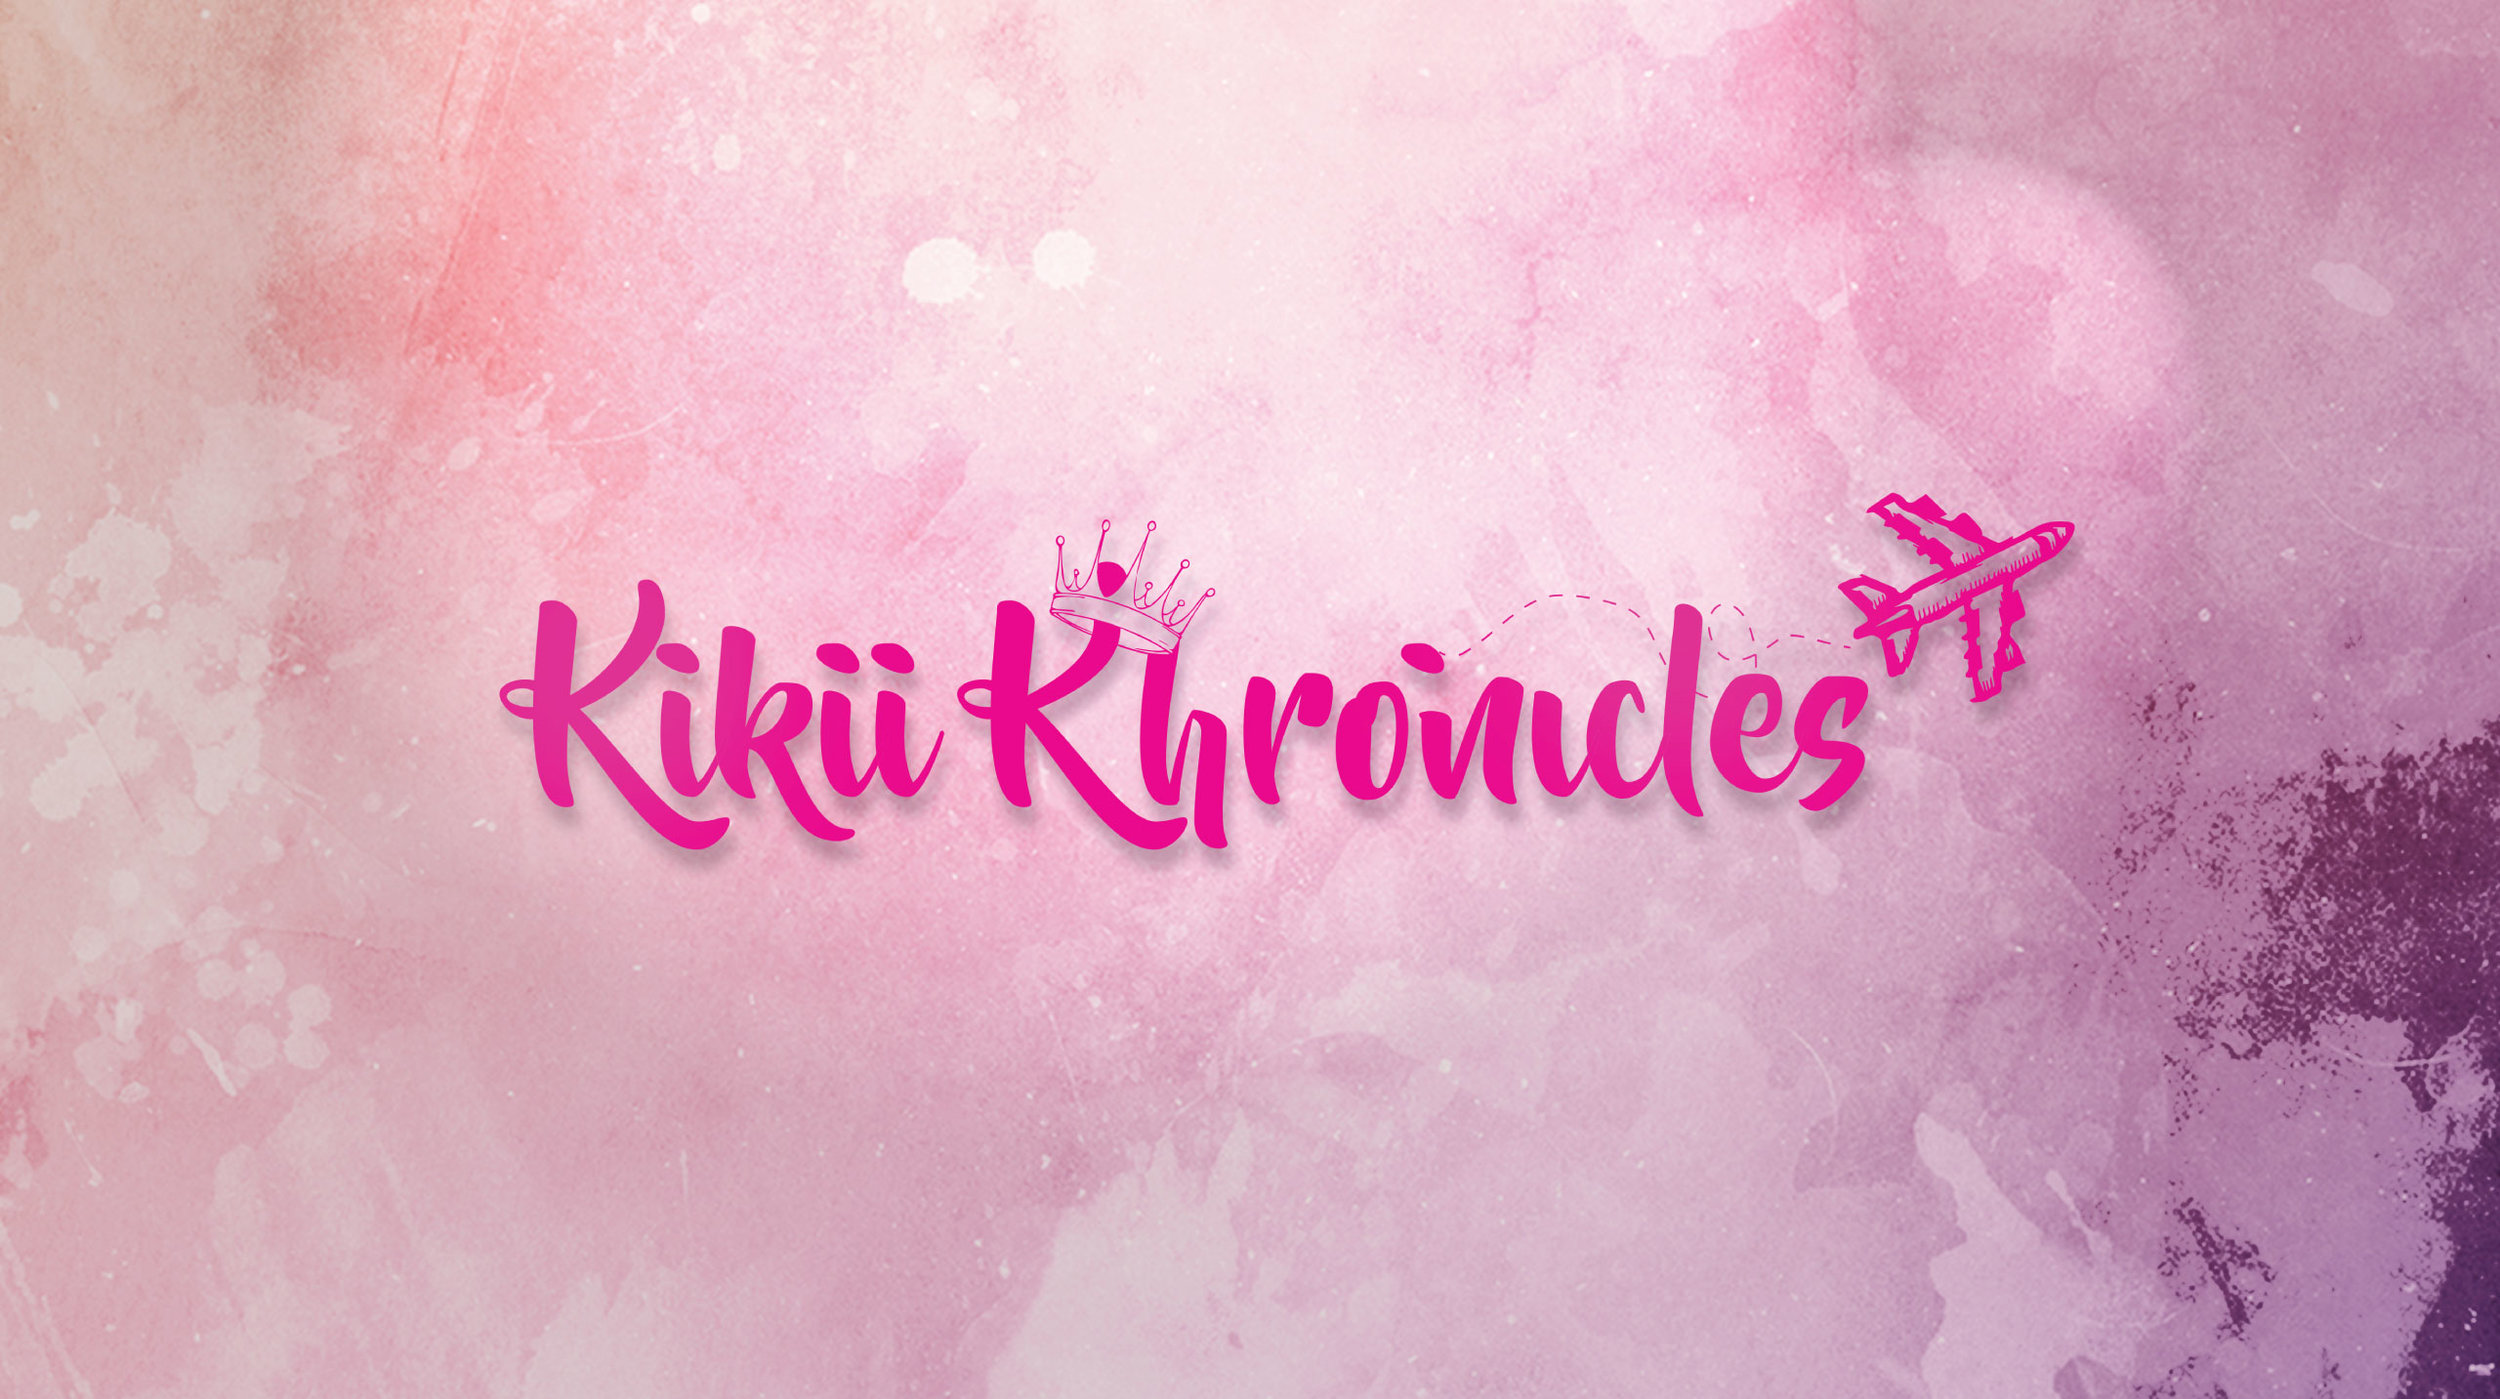 Kikii-Khronicles-Youtube-Banner.jpg